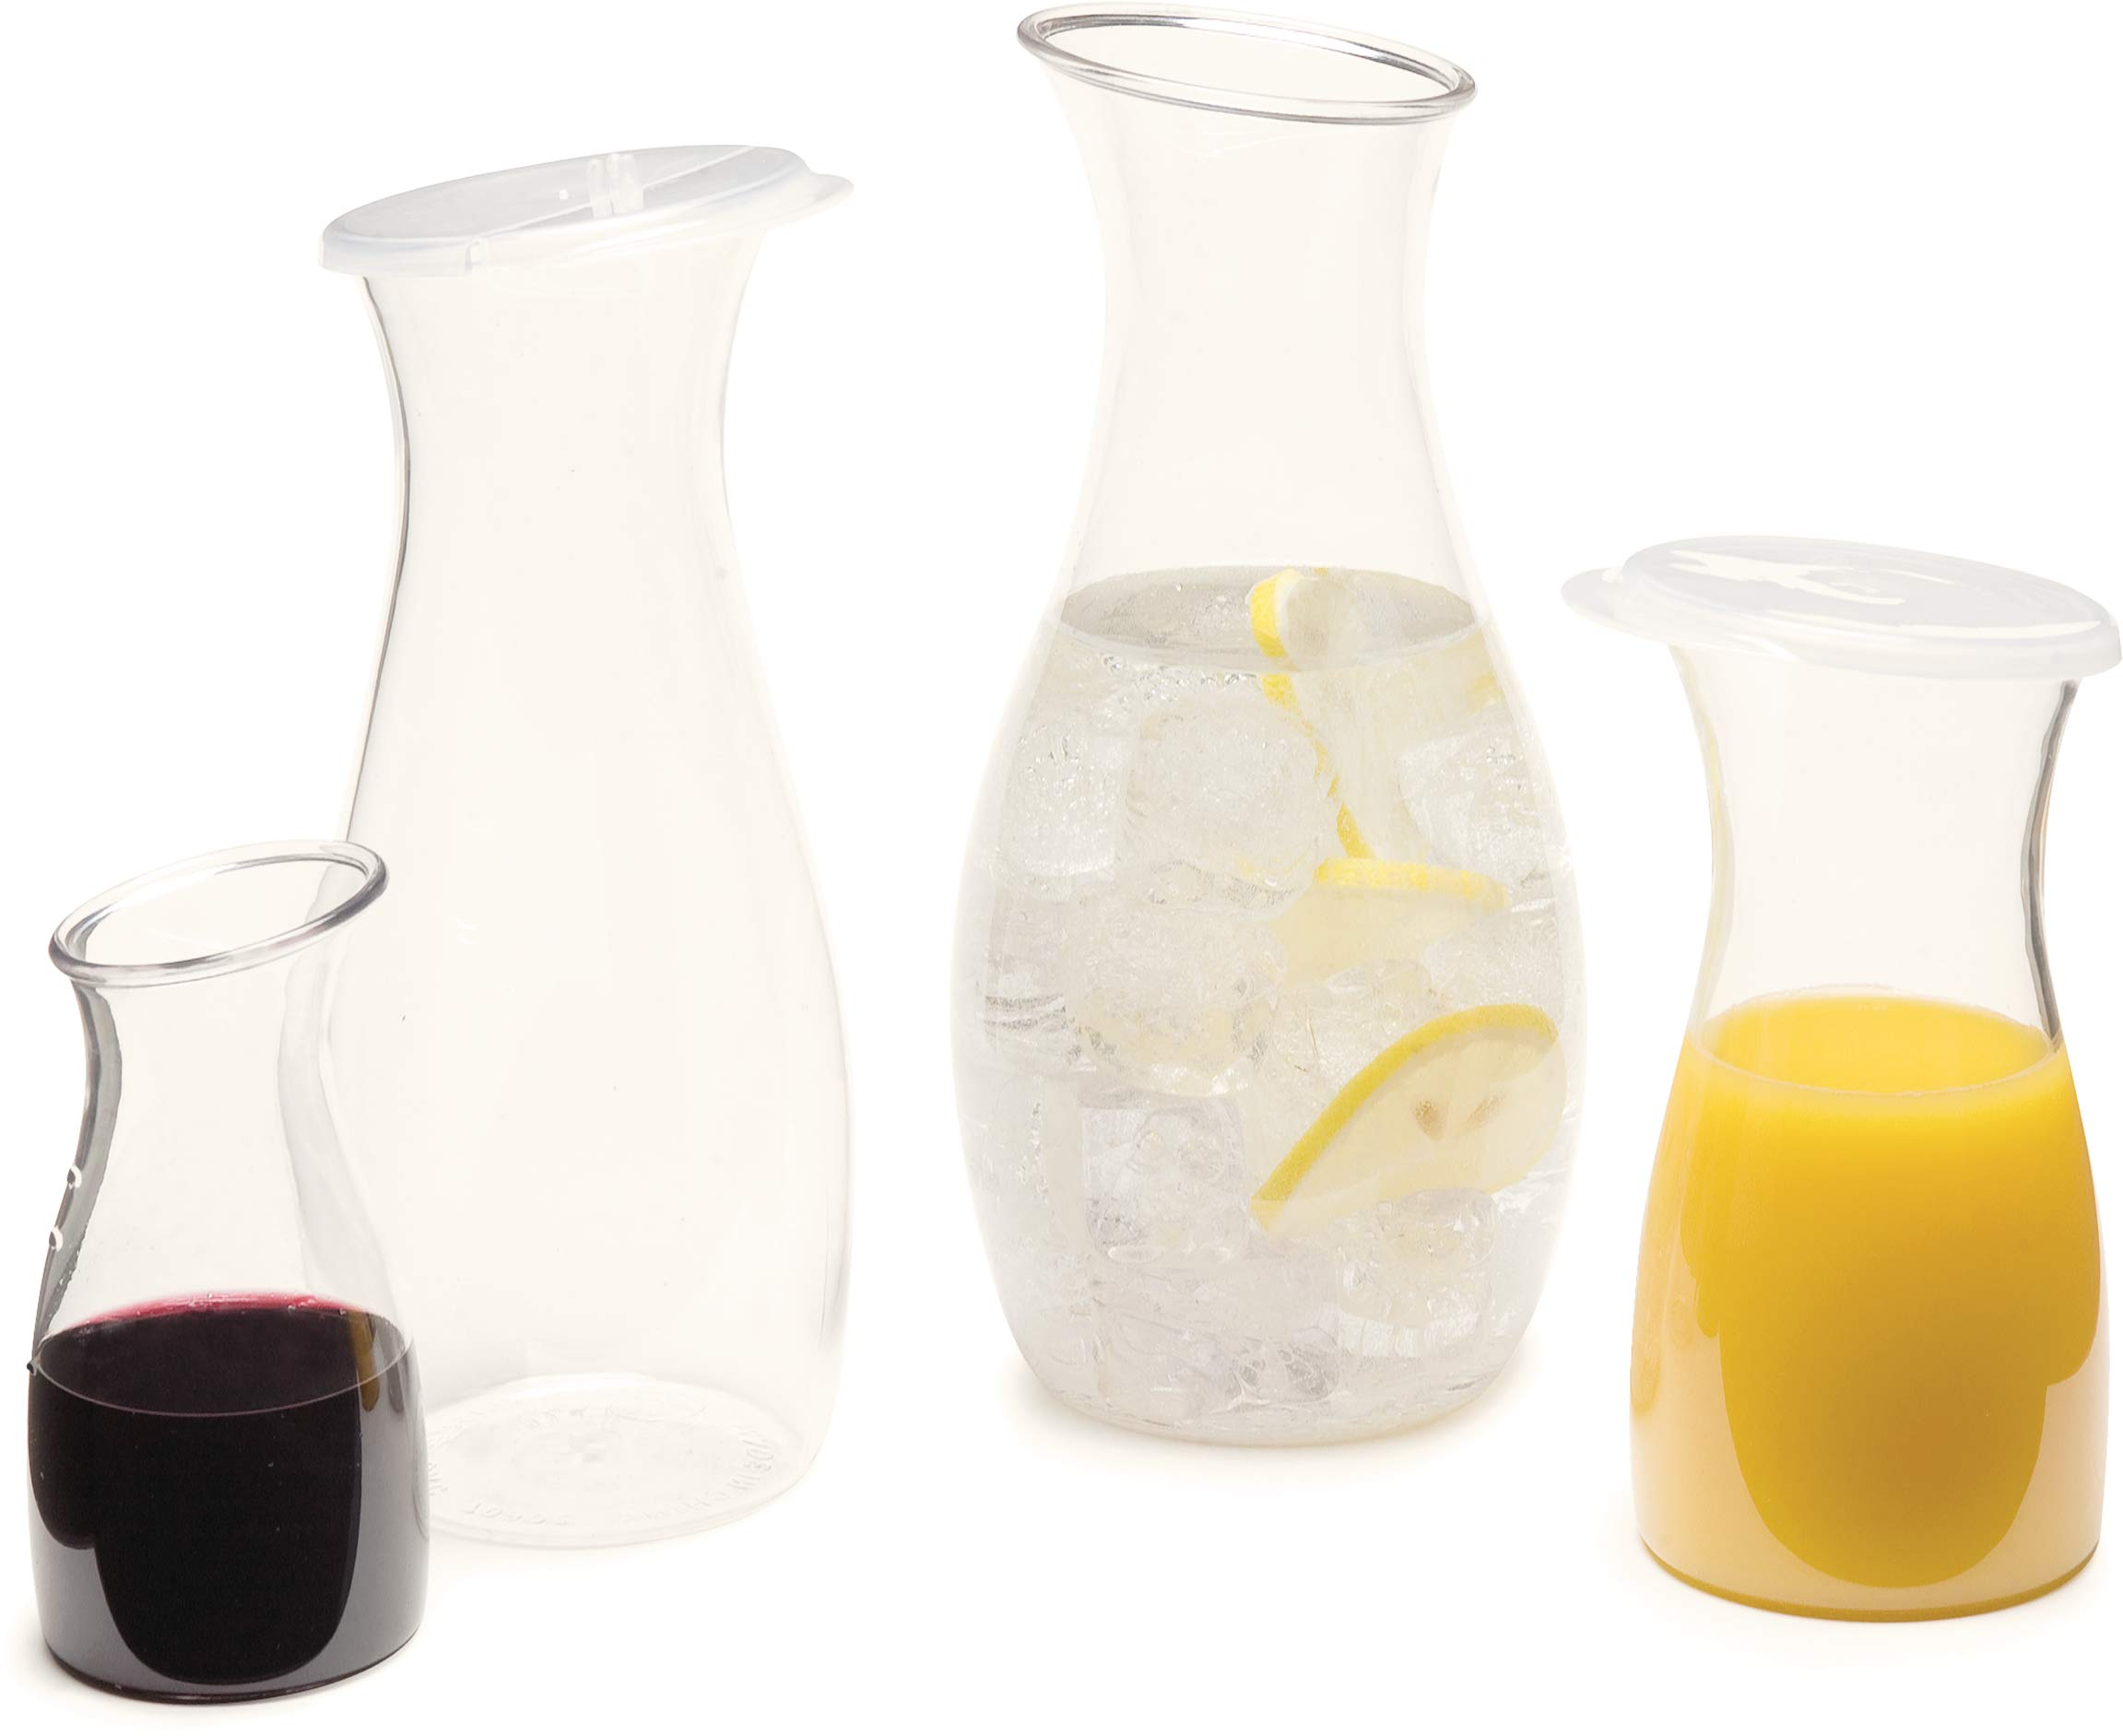 Carlisle 7090207 Cascata Carafe Juice Jar Beverage Decanter Only, Plastic, 1 L, Clear by Carlisle (Image #6)